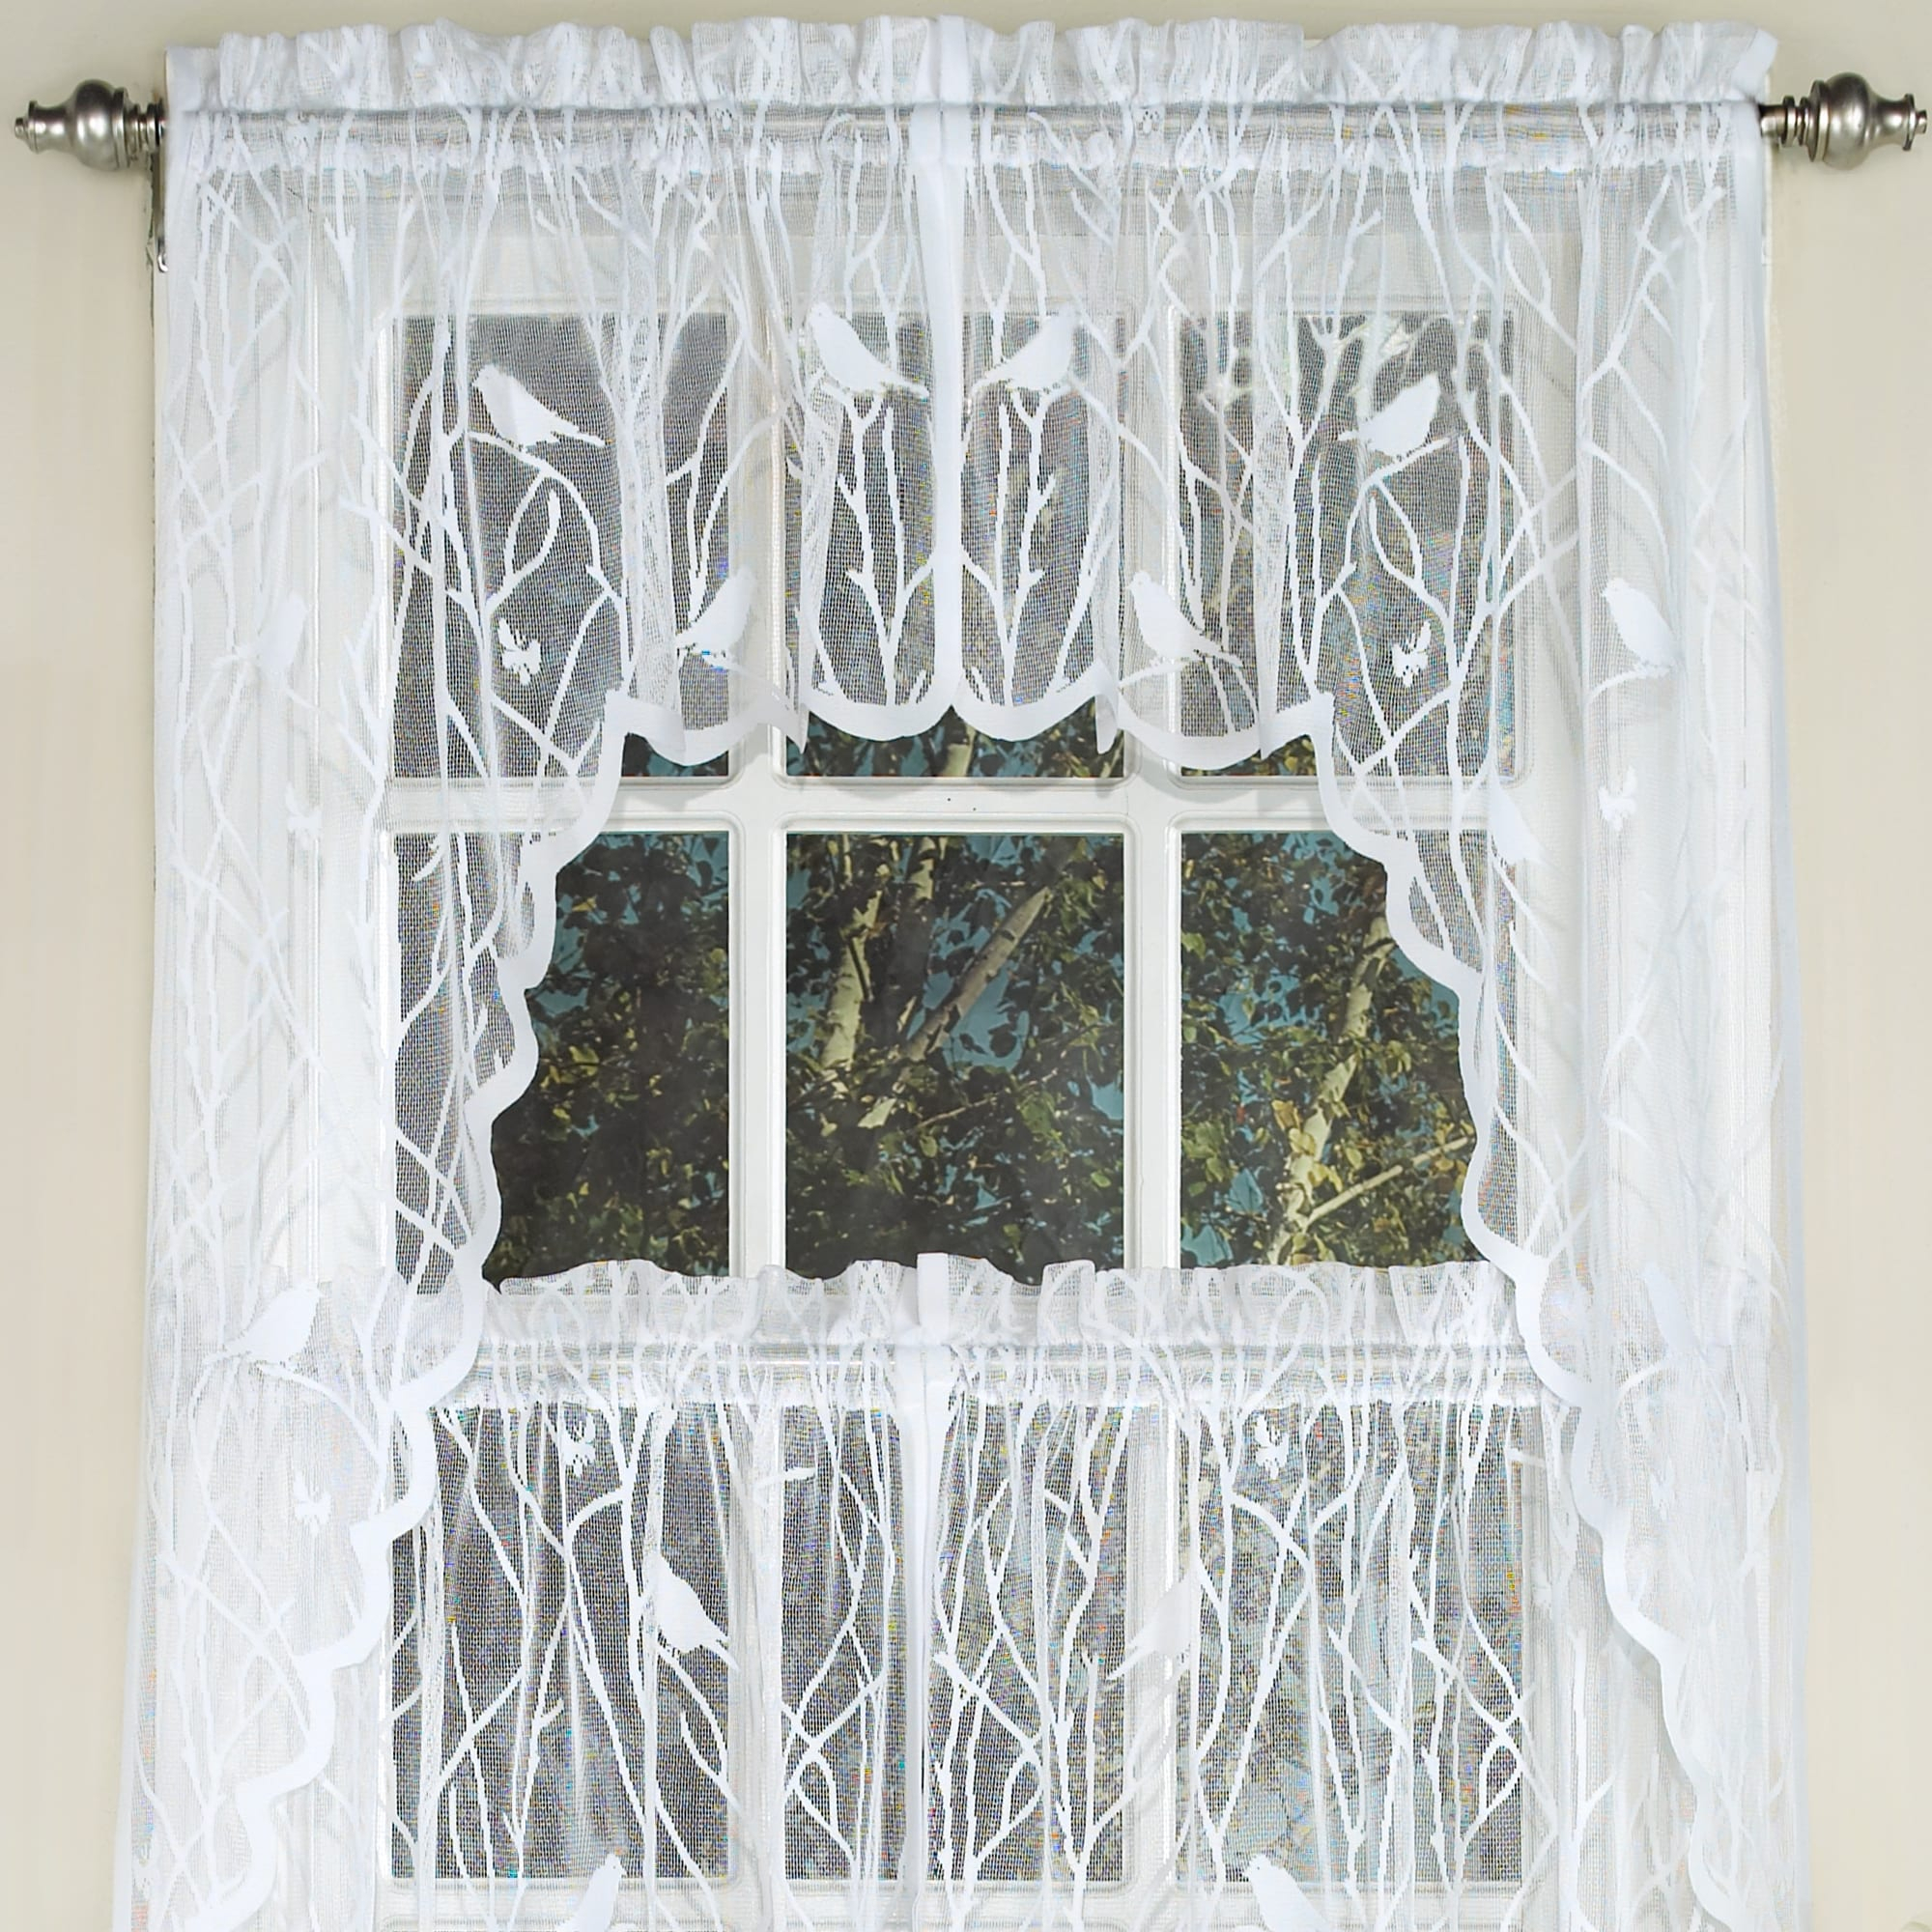 Sweet Home Collection White Polyester Knit Lace Bird Motif With Regard To Ivory Knit Lace Bird Motif Window Curtain (View 18 of 20)